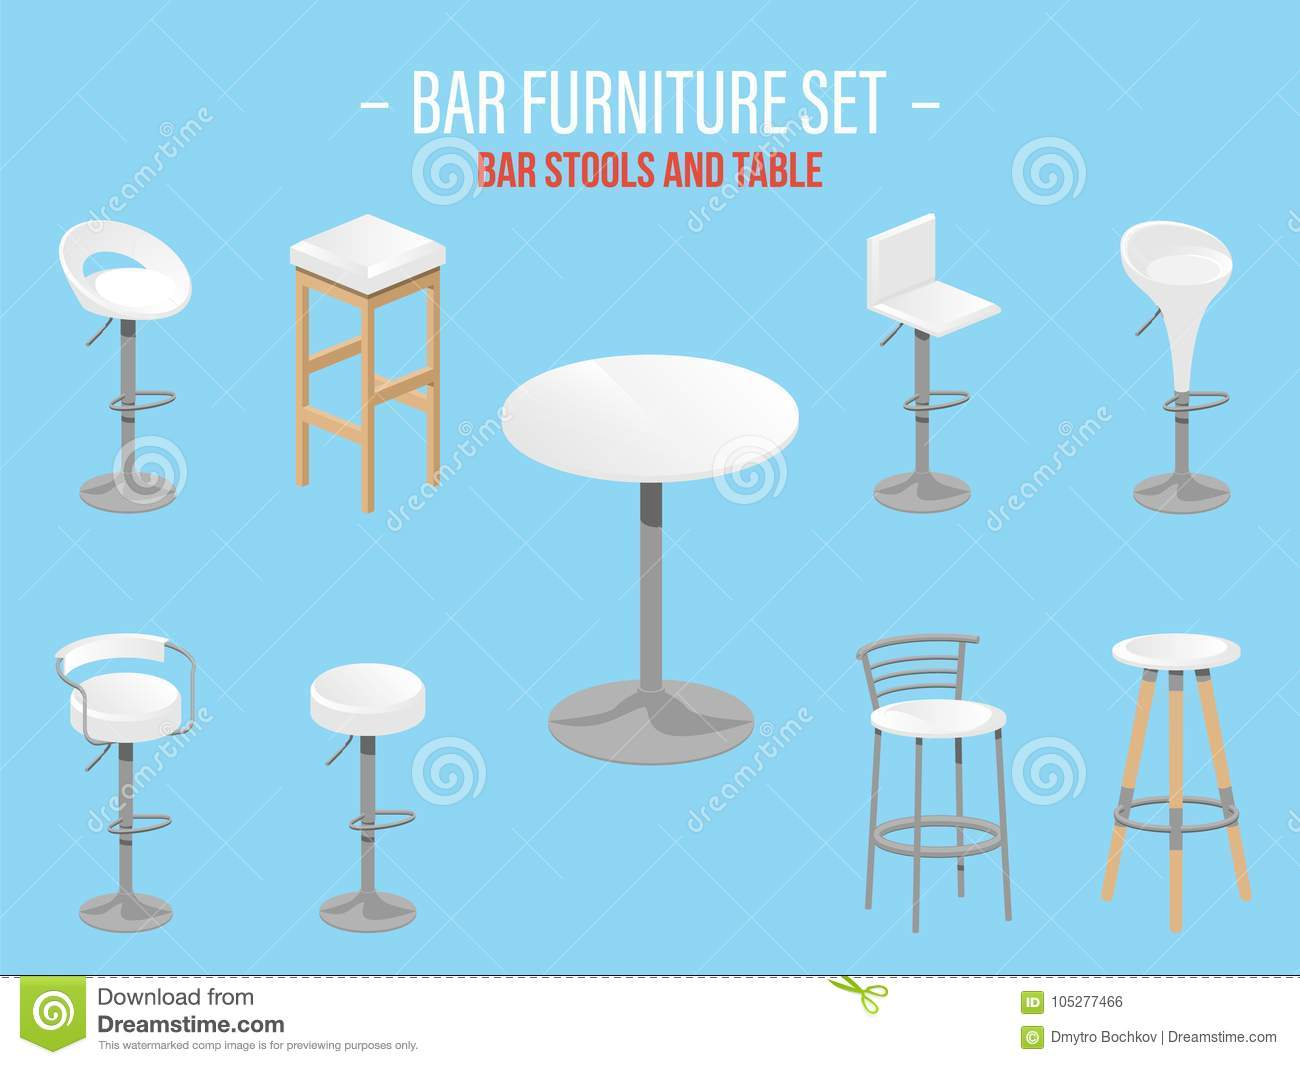 Set of bar stools and table stock illustration